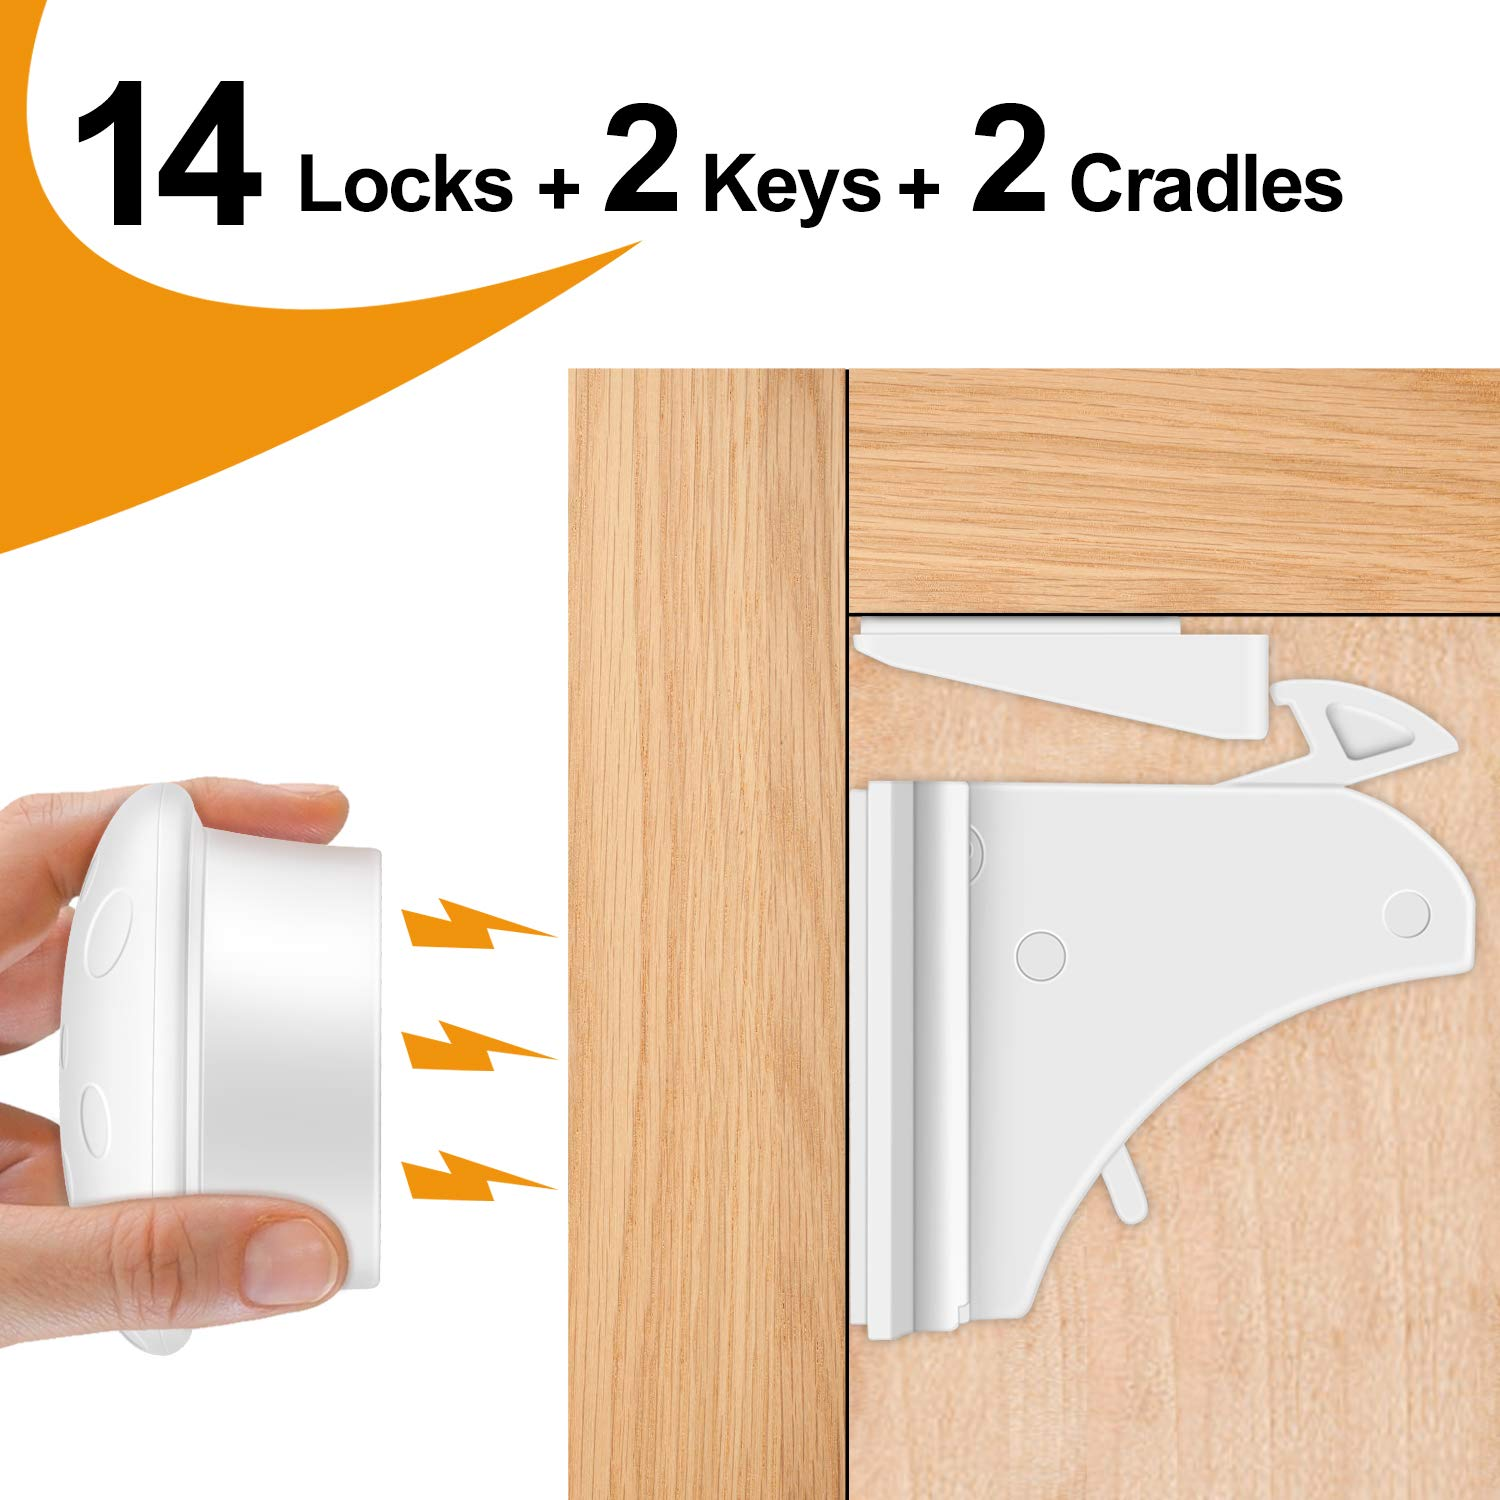 Cabinet Locks Child Safety Latches, OUSI 2020 upgraded 14+2+2 PACK Baby Proofing Cabinet Locks, Magnetic Cabinet Locks for Drawers and Cabinets - Adhesive Locks, No Tool or Drill by OUSI